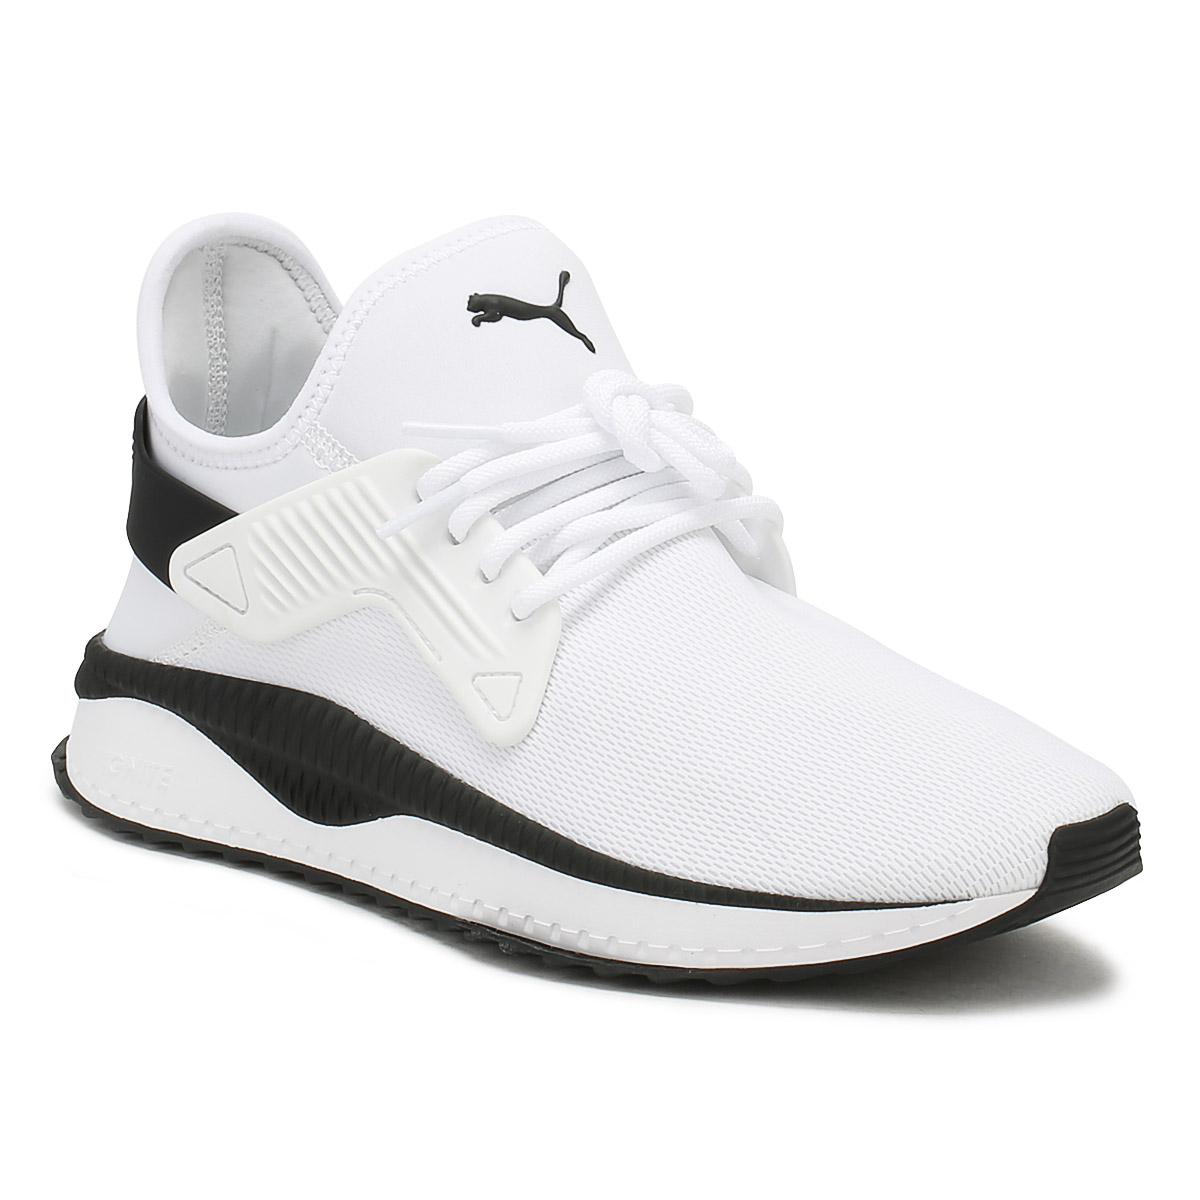 PUMA Hombre Blanco Tsugi Cage Trainers Lace Up Sport Sport Sport Casual Zapatos fba971